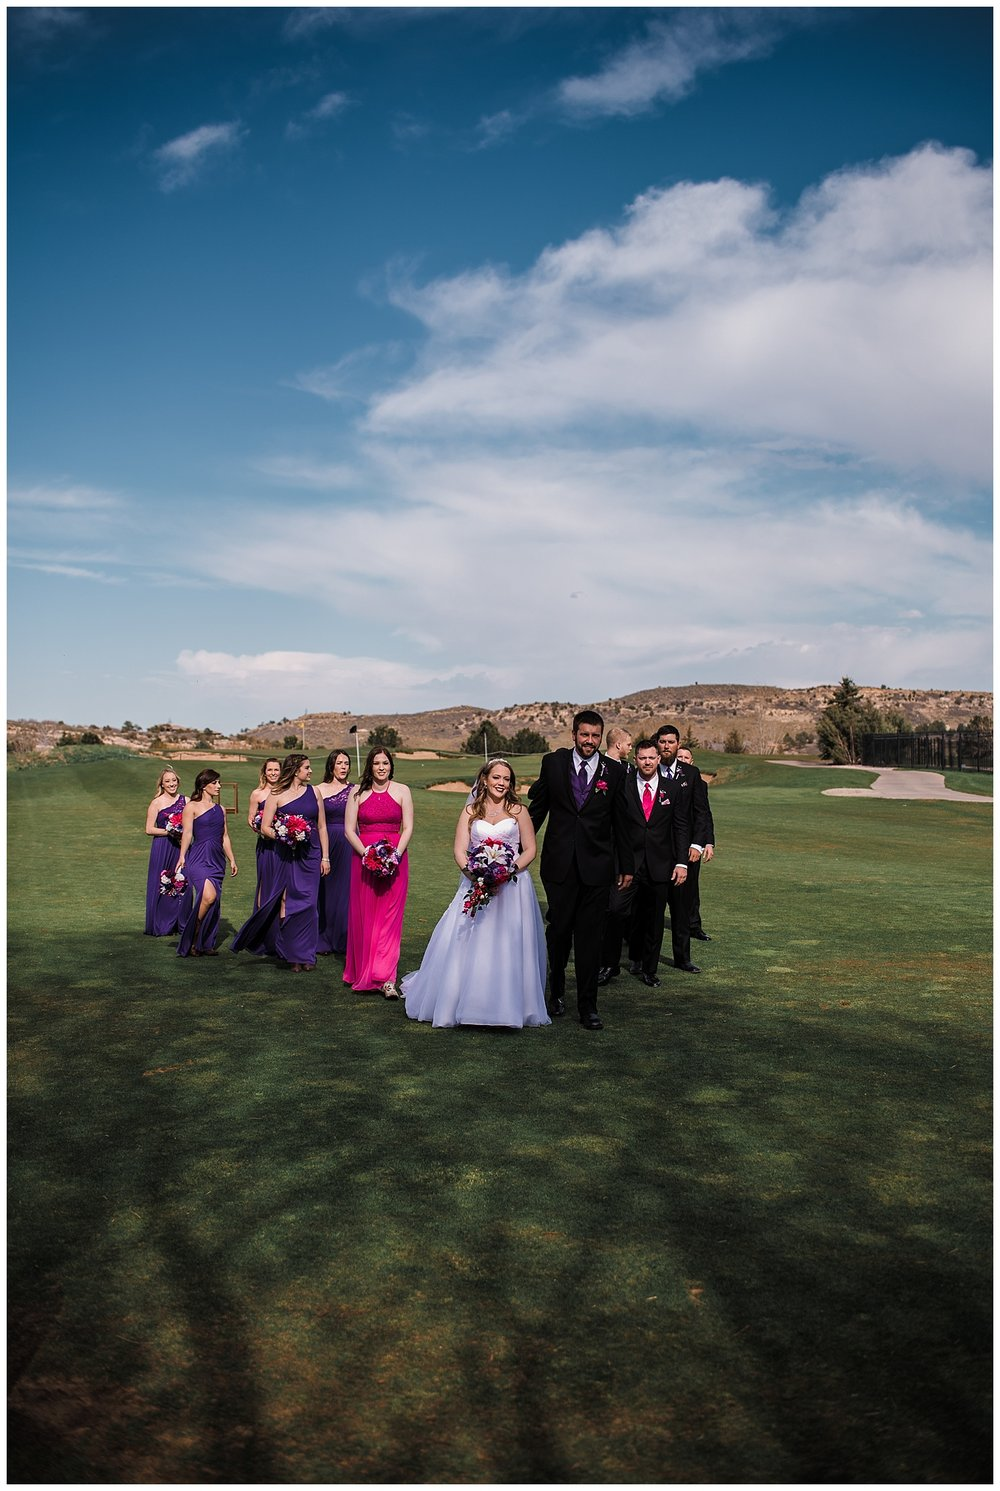 Wedding party portraits, Wedding at Red Rocks Country Club, Red Rocks Wedding, Colorado Wedding Photographer, Denver Wedding photographer, Rocky Mountain Wedding Photographer, Intimate Colorado Wedding Photographer